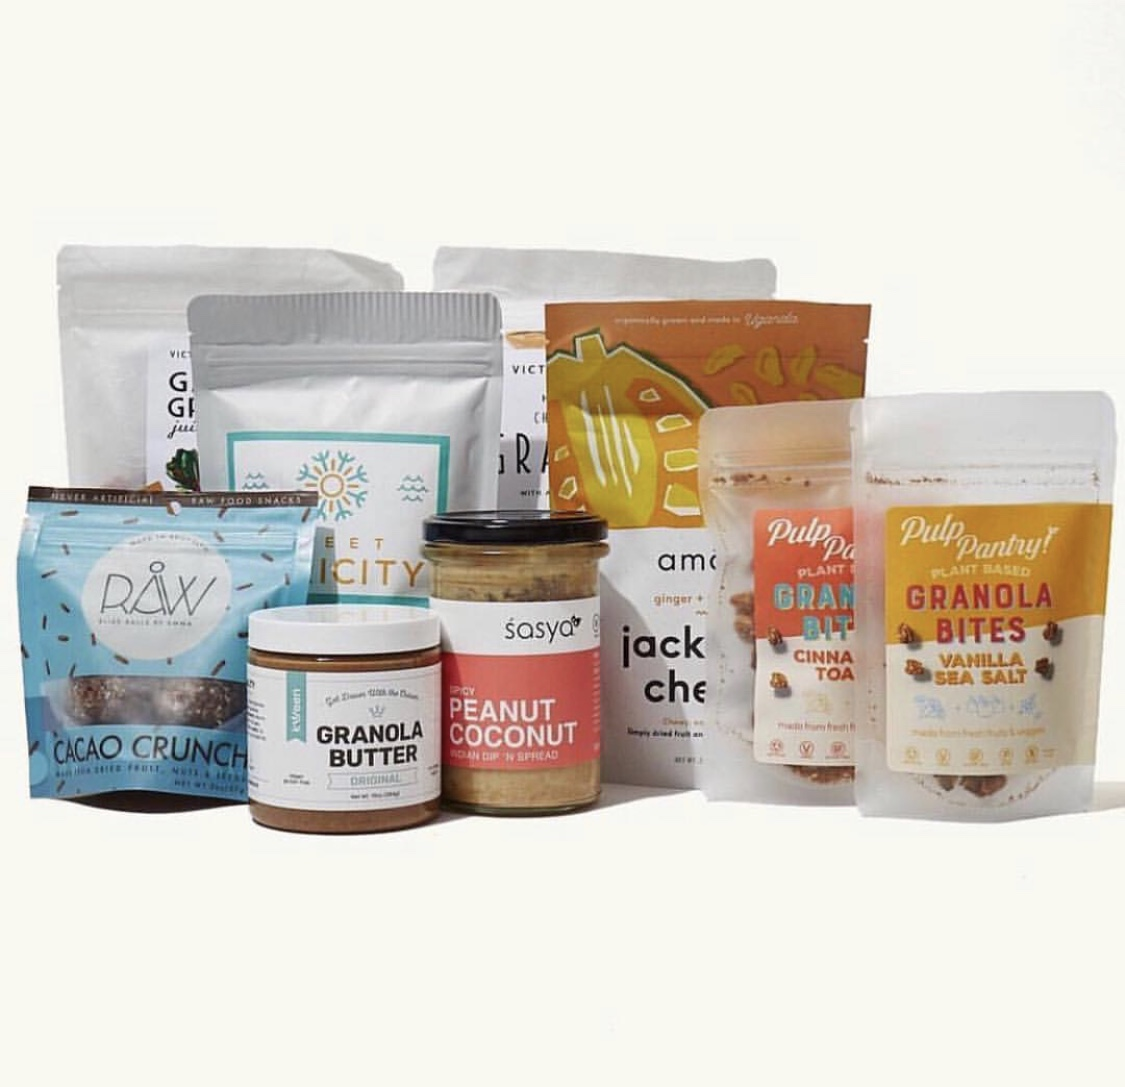 Garden Granola and our Cherry Almond Hemp Granuesli can be seen in the back row with six other snacks all picked by Jessica Young in collaboration with Bon Appé